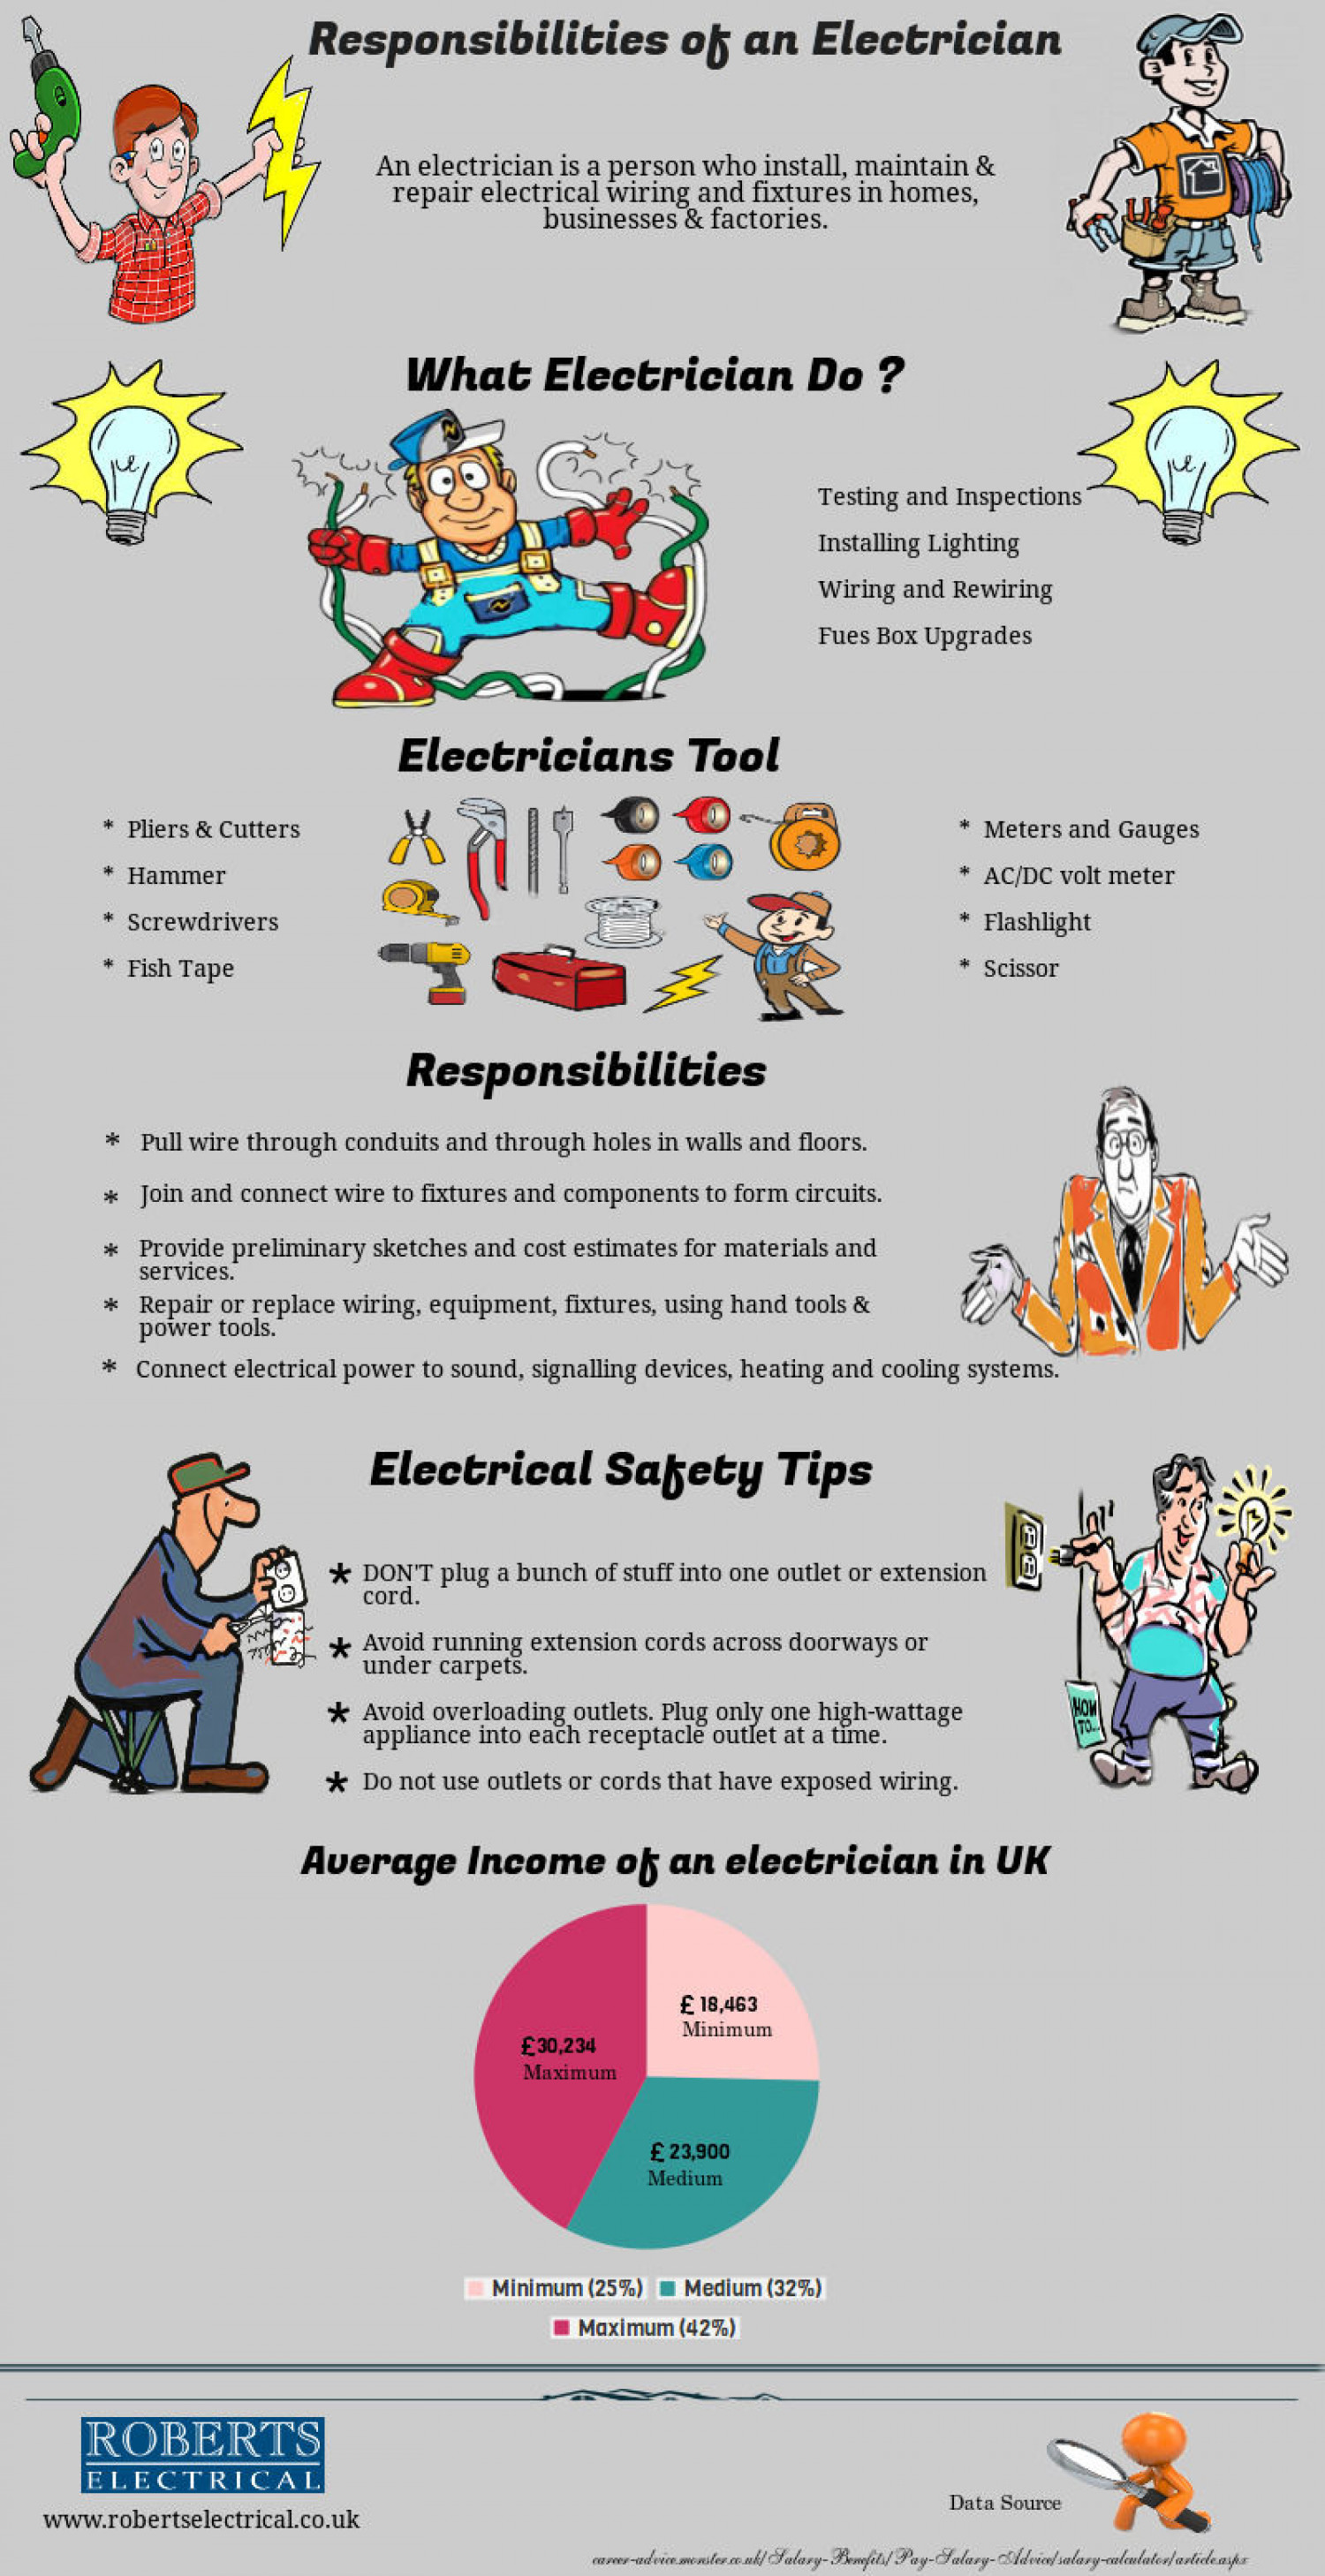 Responsibilities of an Electrician Infographic